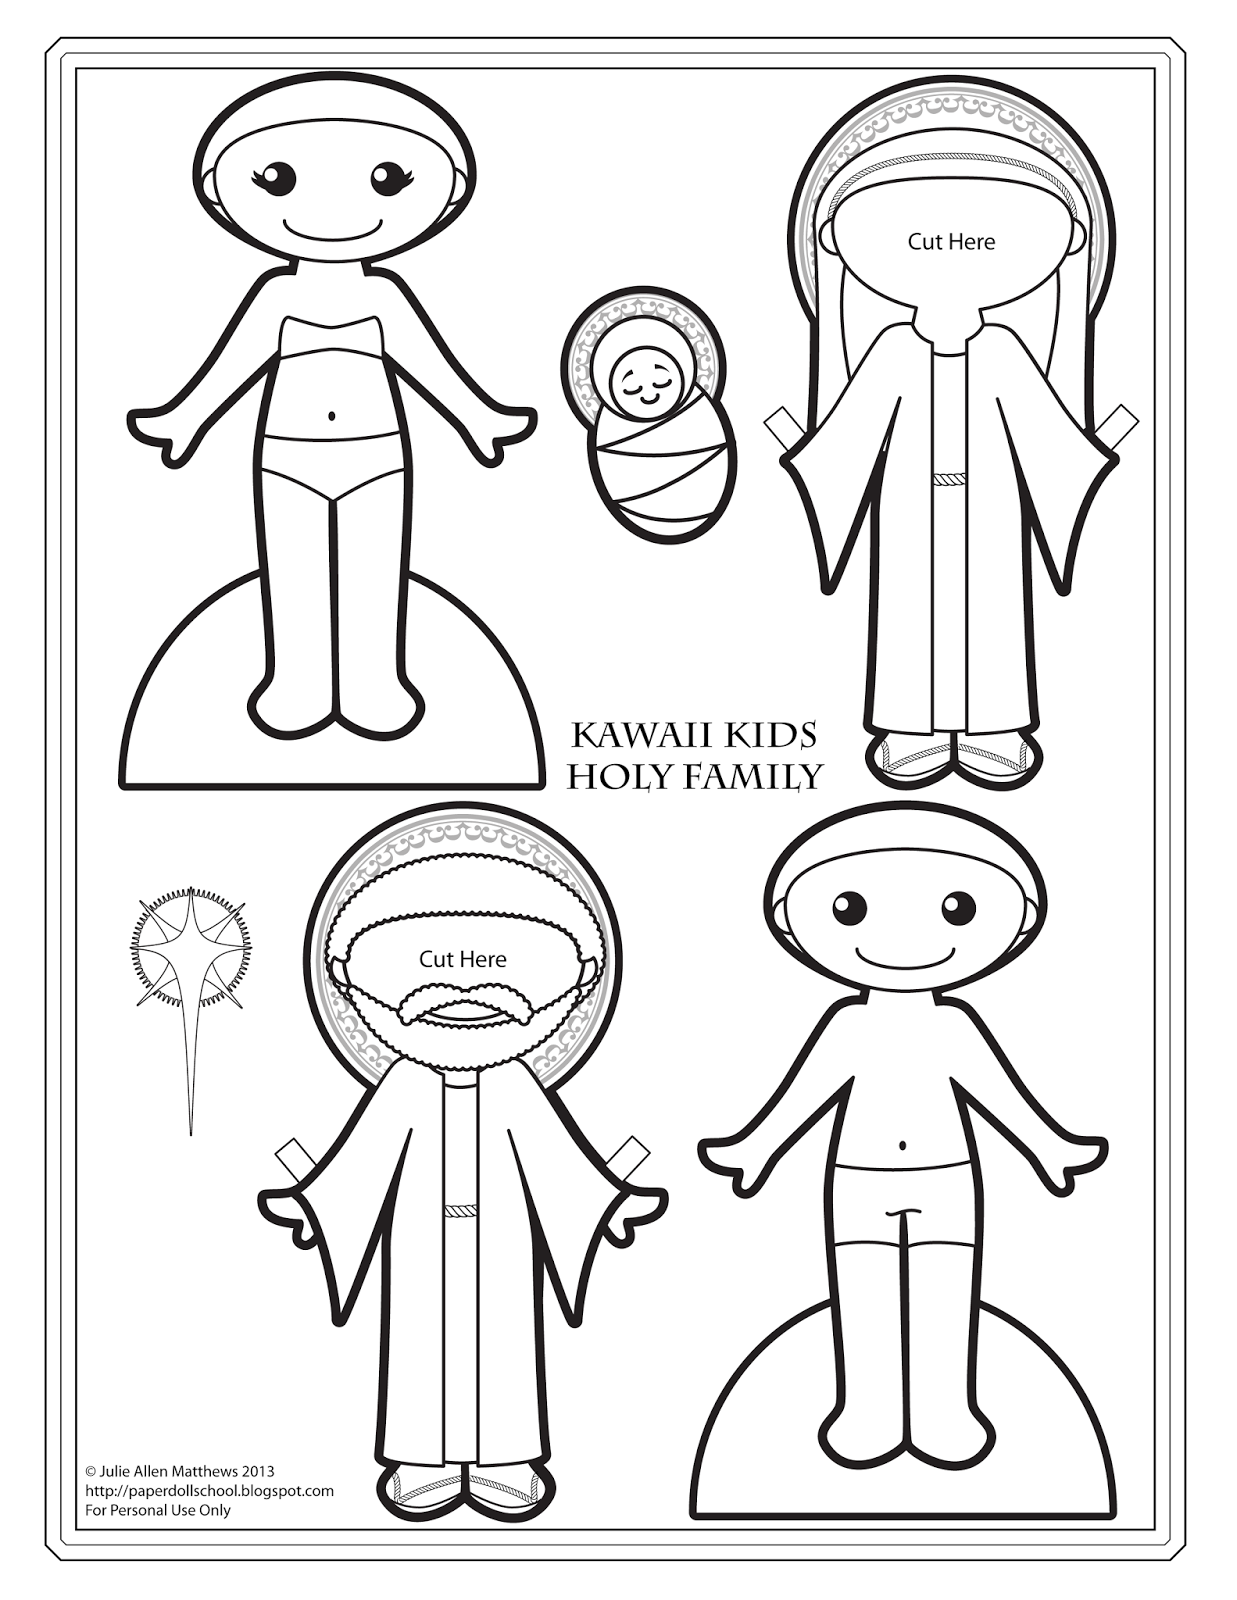 Tutorial blog focused on how to make paper dolls. Tips